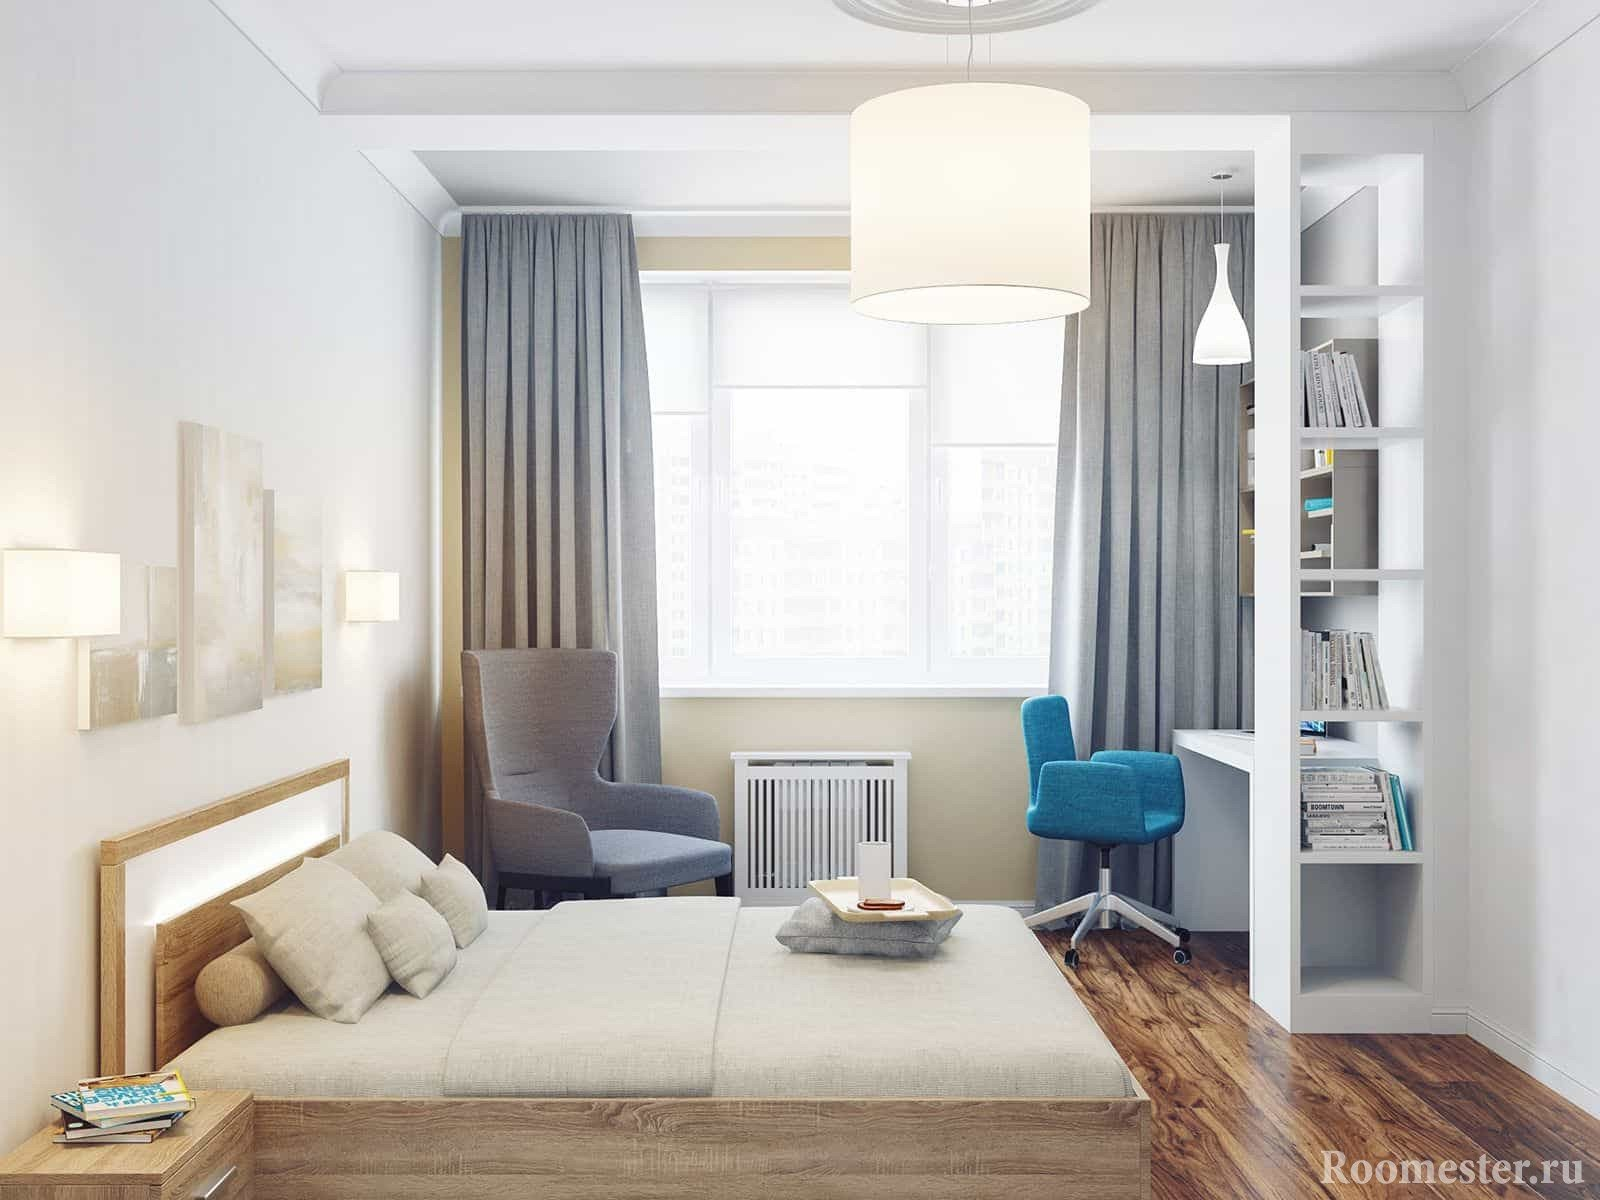 In the bedroom 4 by 4 can fit not only a bed, but also a chair and a corner with a workplace.